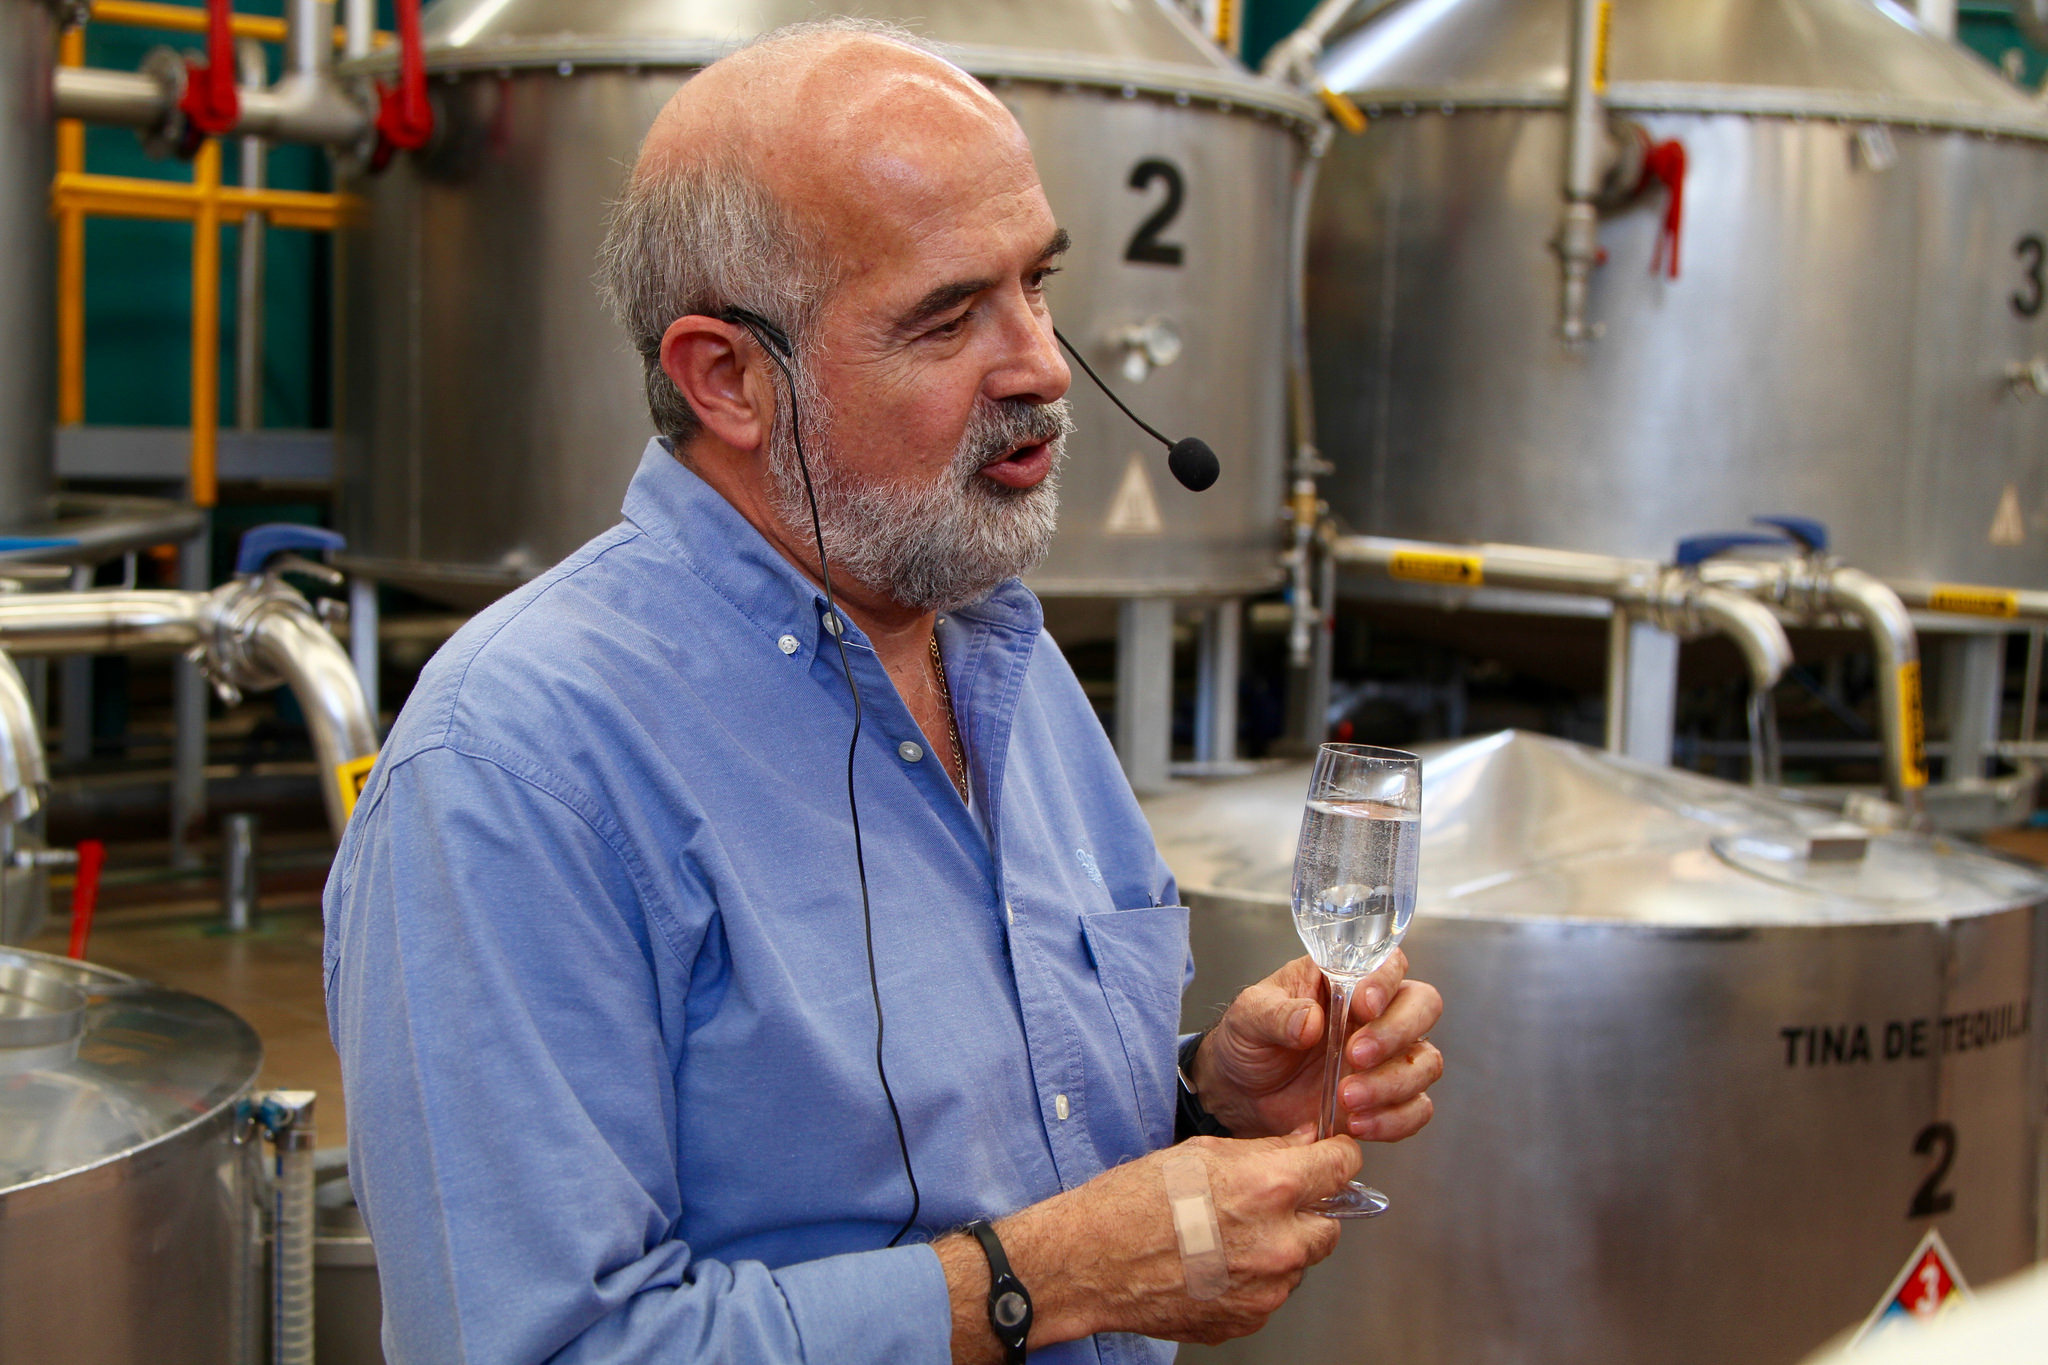 Don Julio Master Distiller Enrique de Colsa